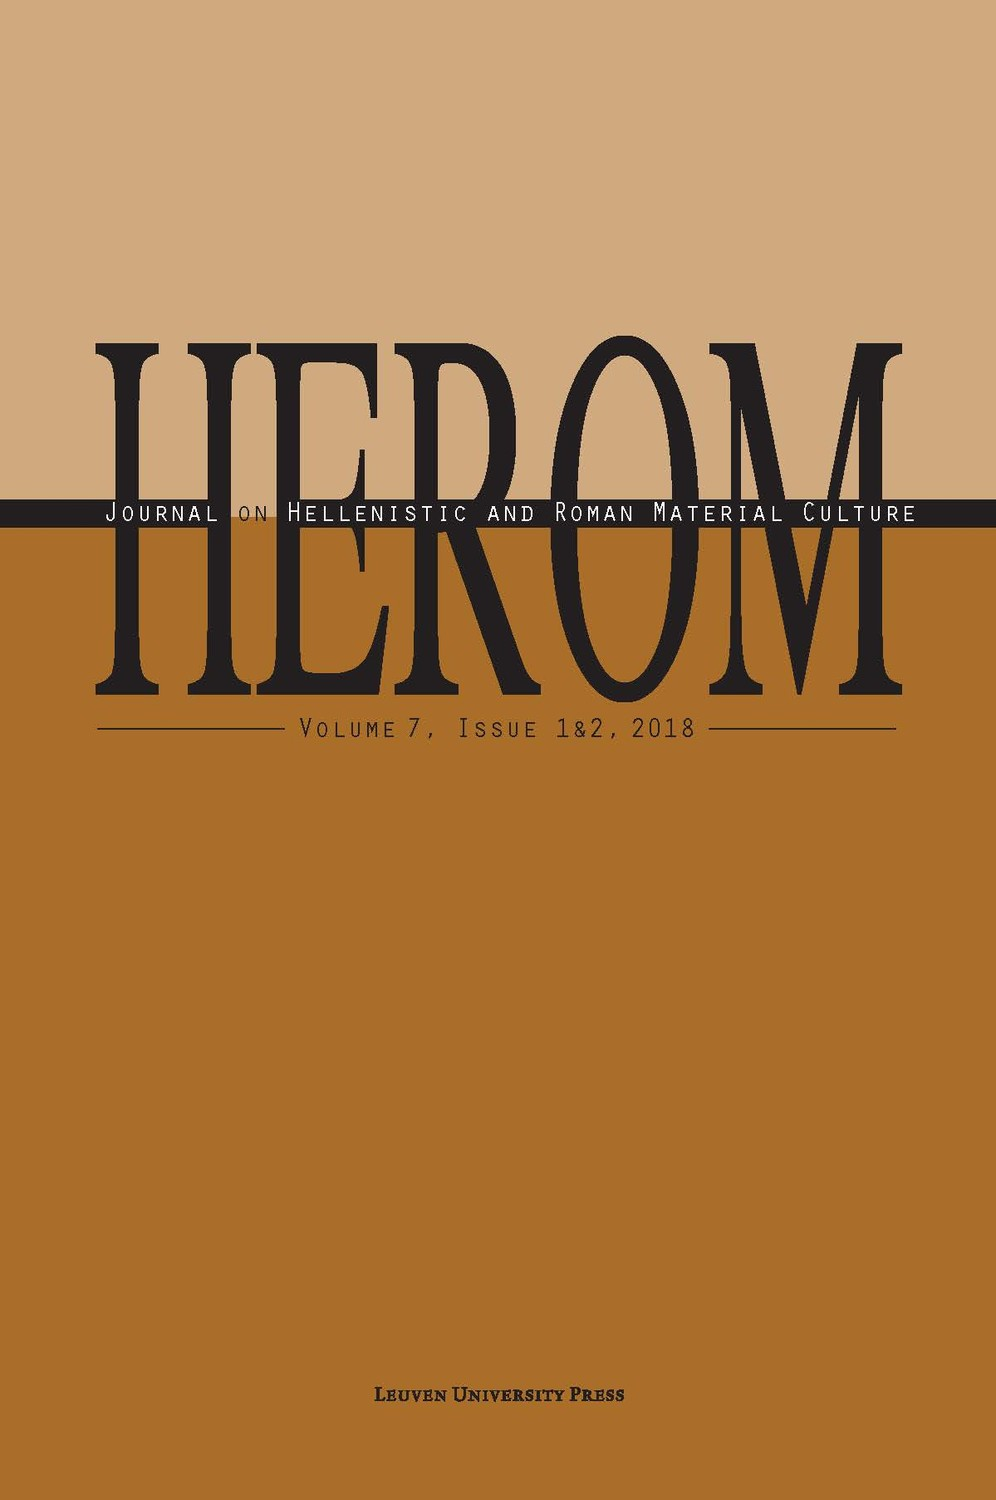 HEROM Volume 7 Issue 1 & 2, 2018 (Journal Subscription)